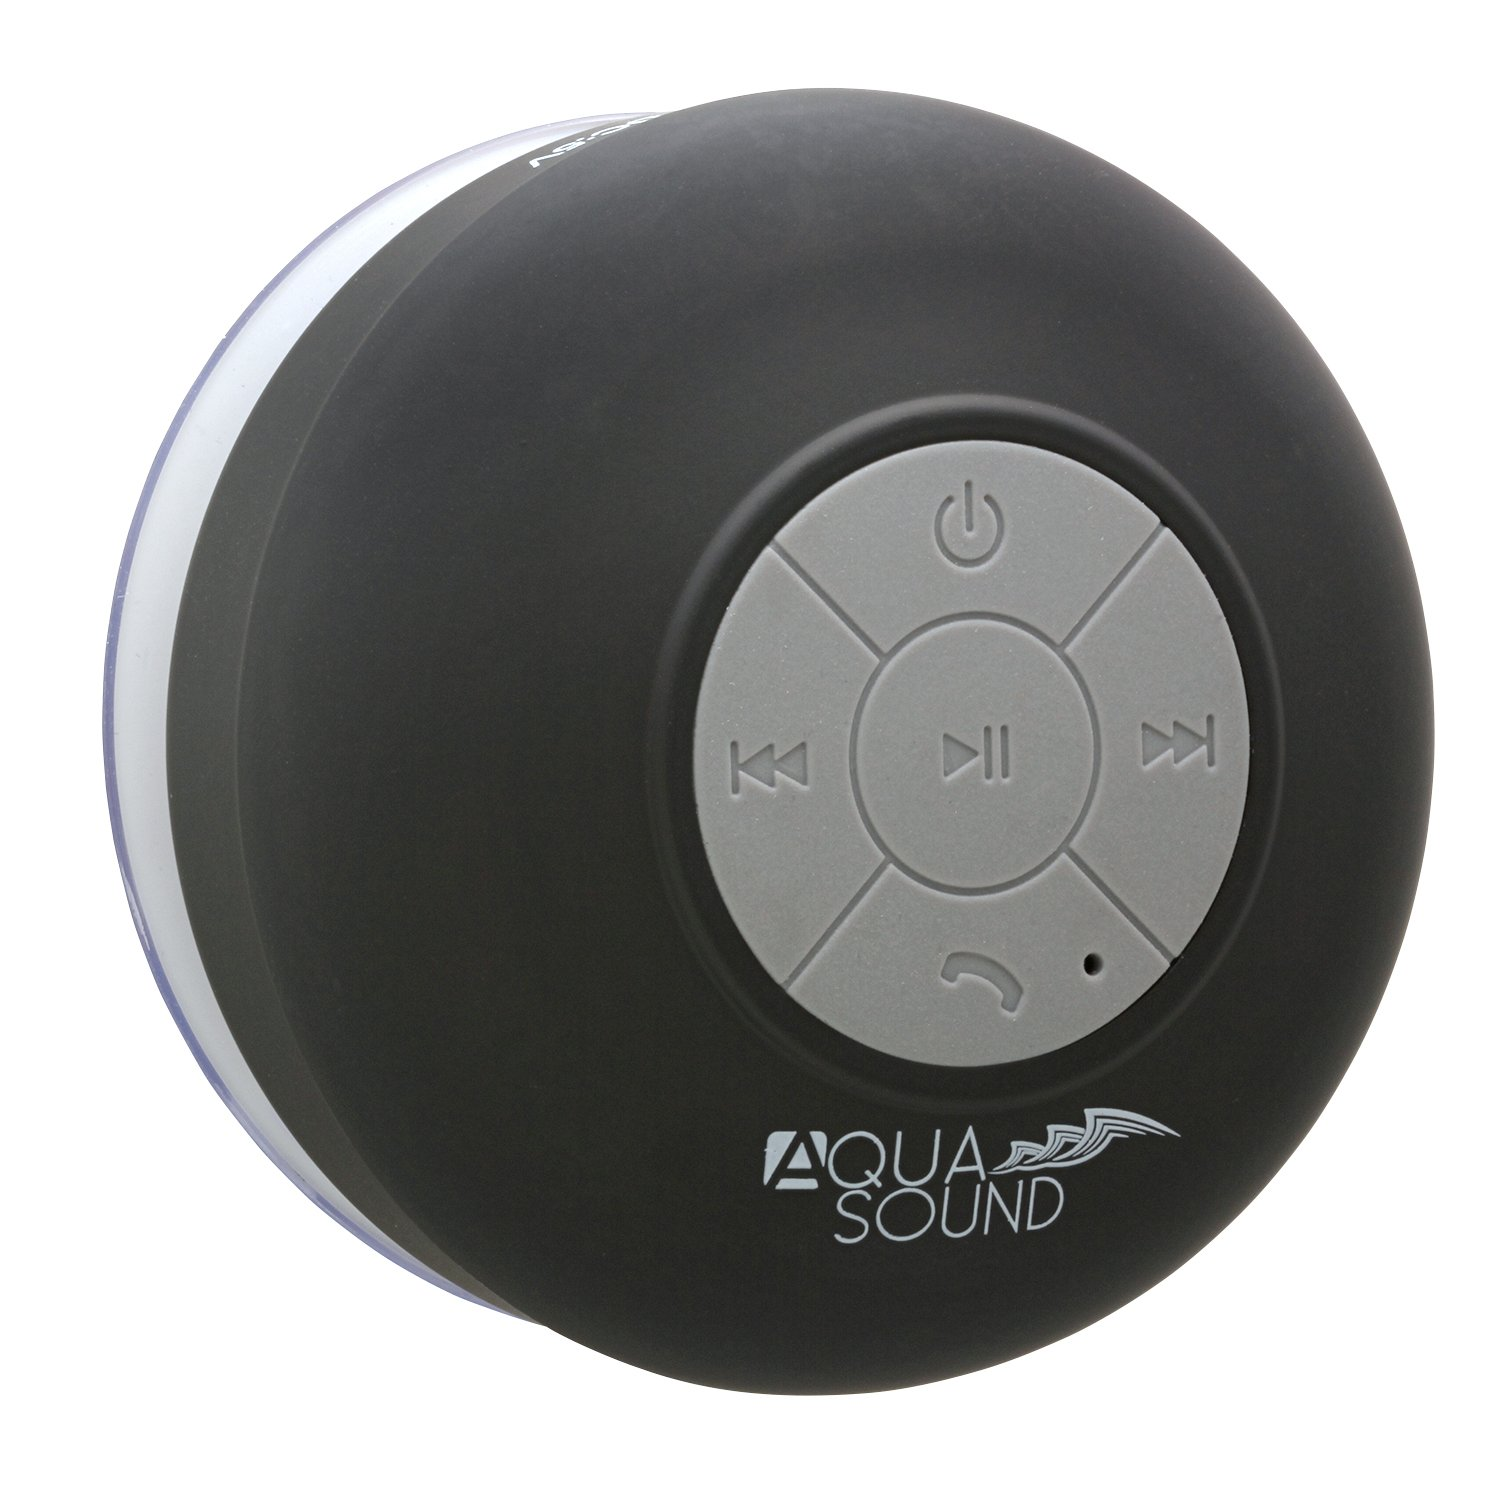 Aduro Aquasound Wsp20 Shower Speaker Portable Waterproof